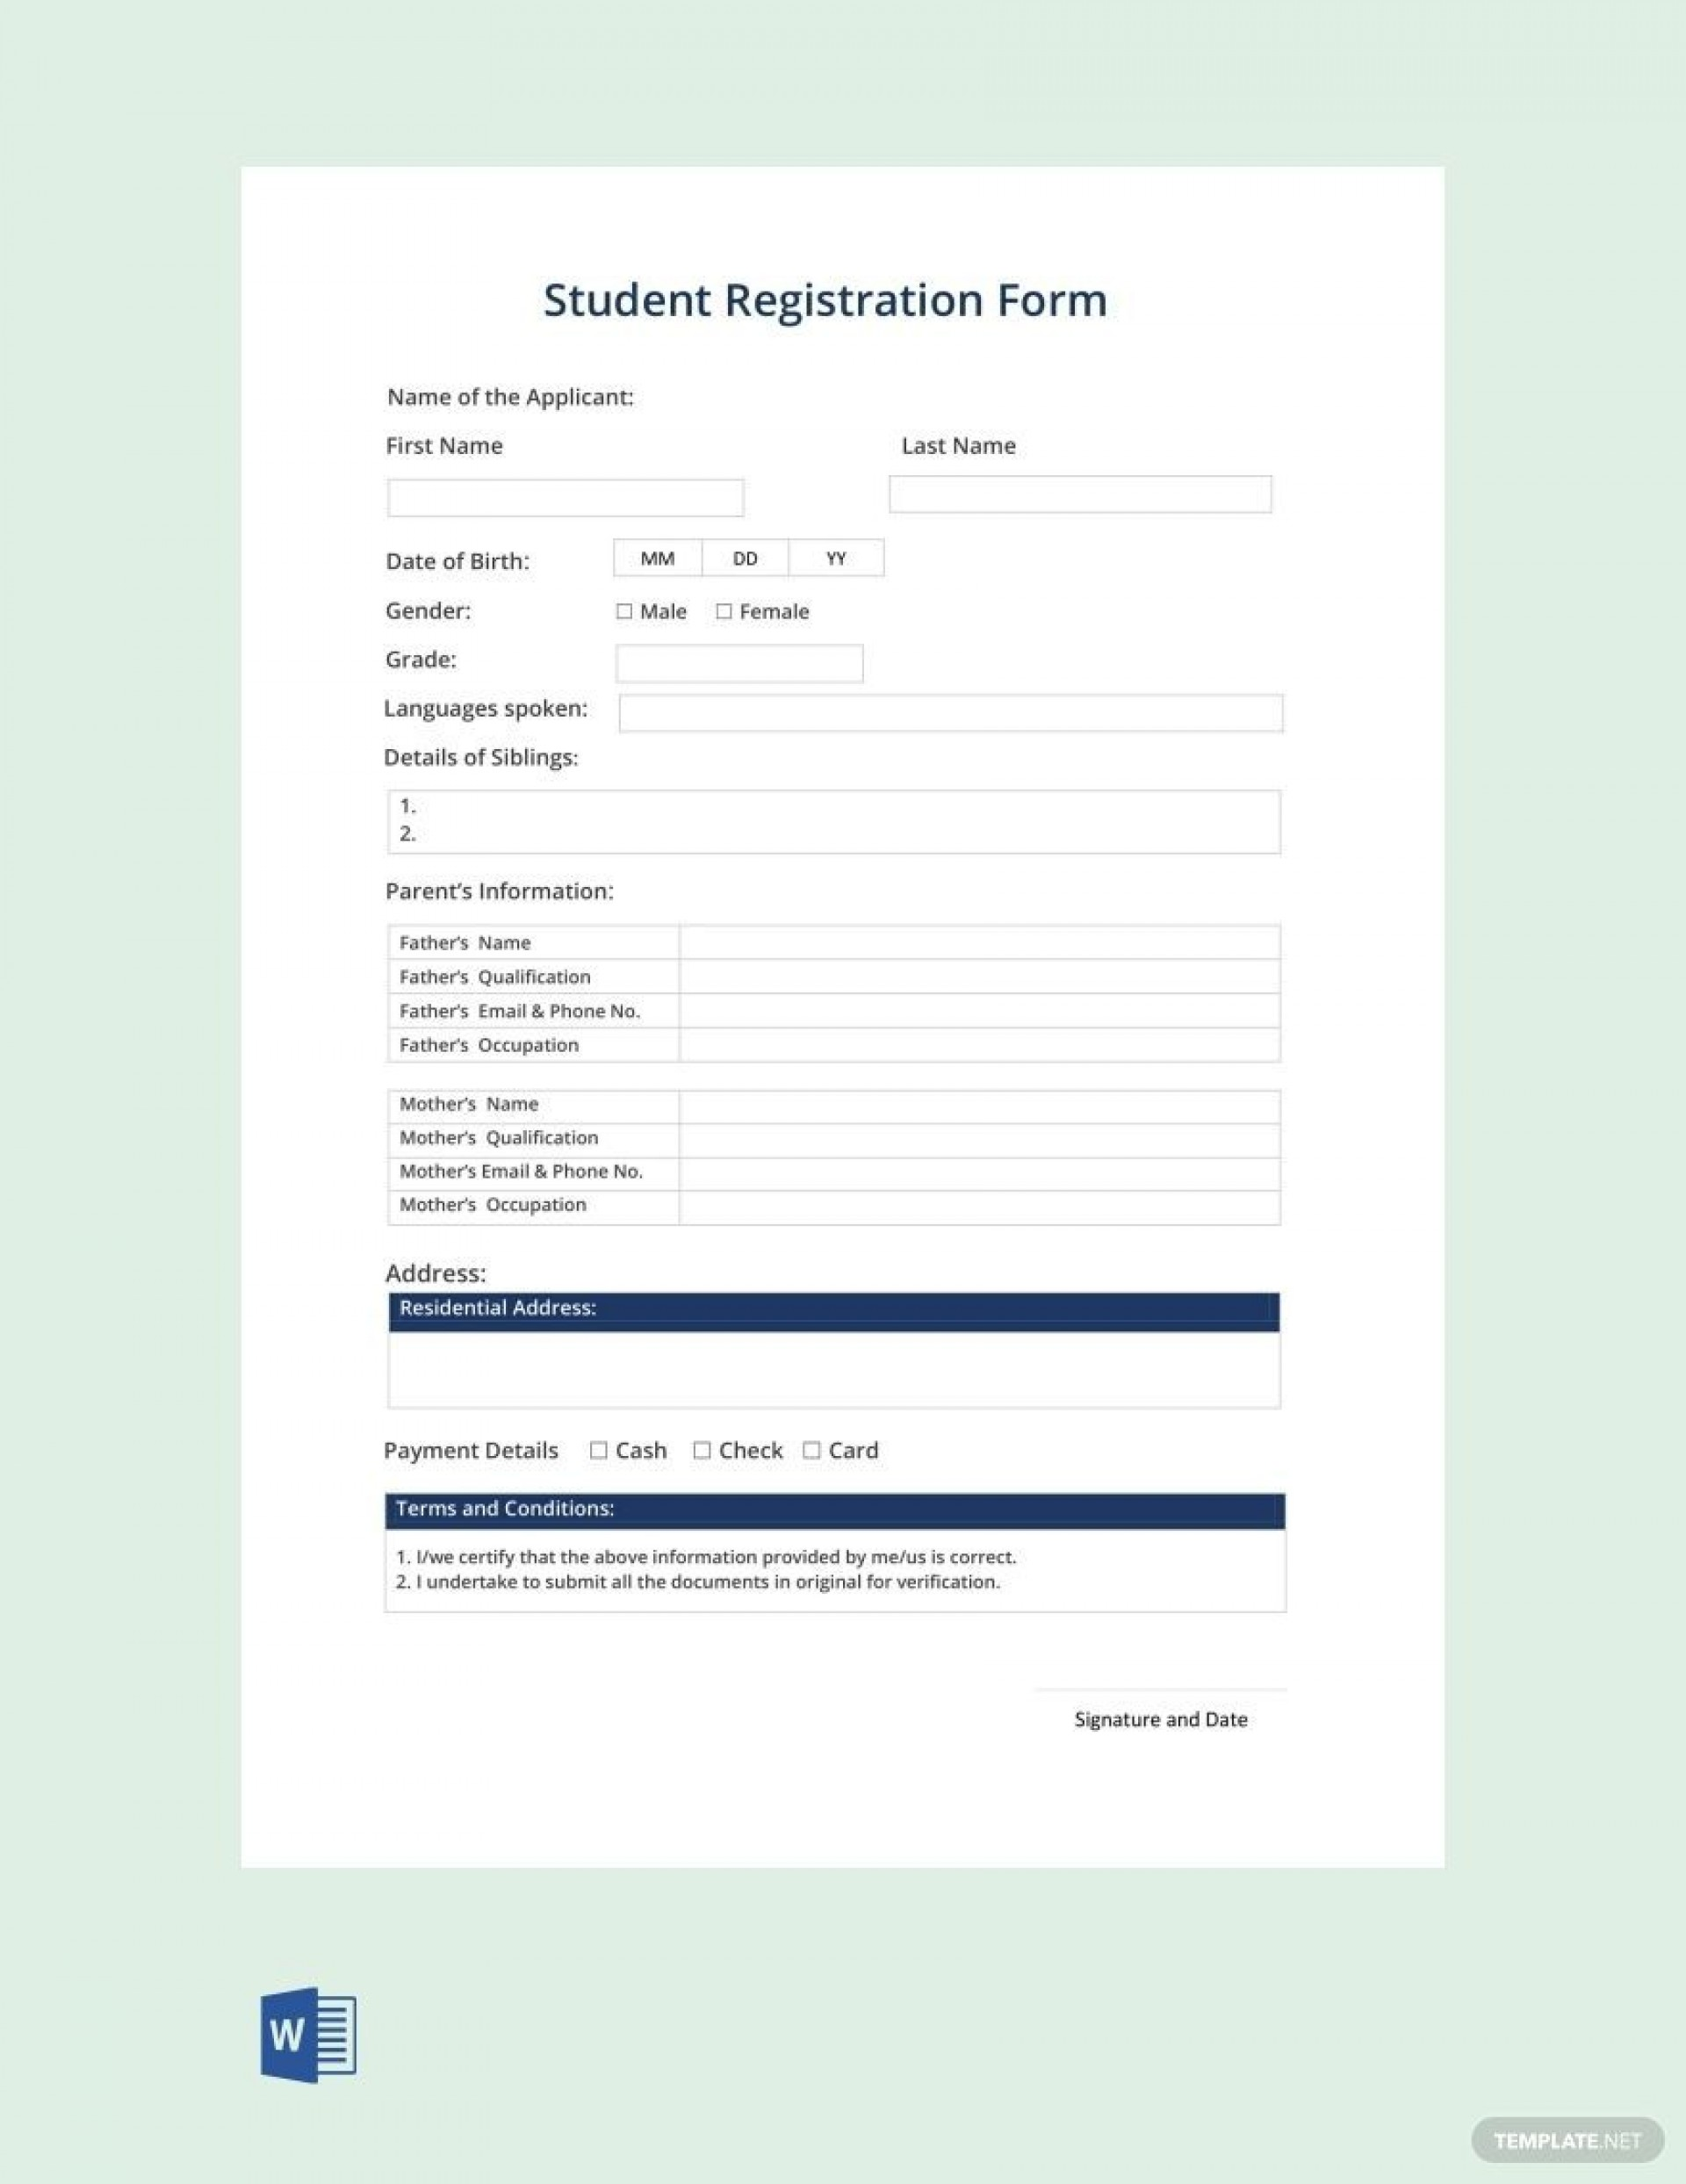 004 Fearsome Registration Form Template Free Download Highest Quality  Bootstrap Student W3layout In Php1920